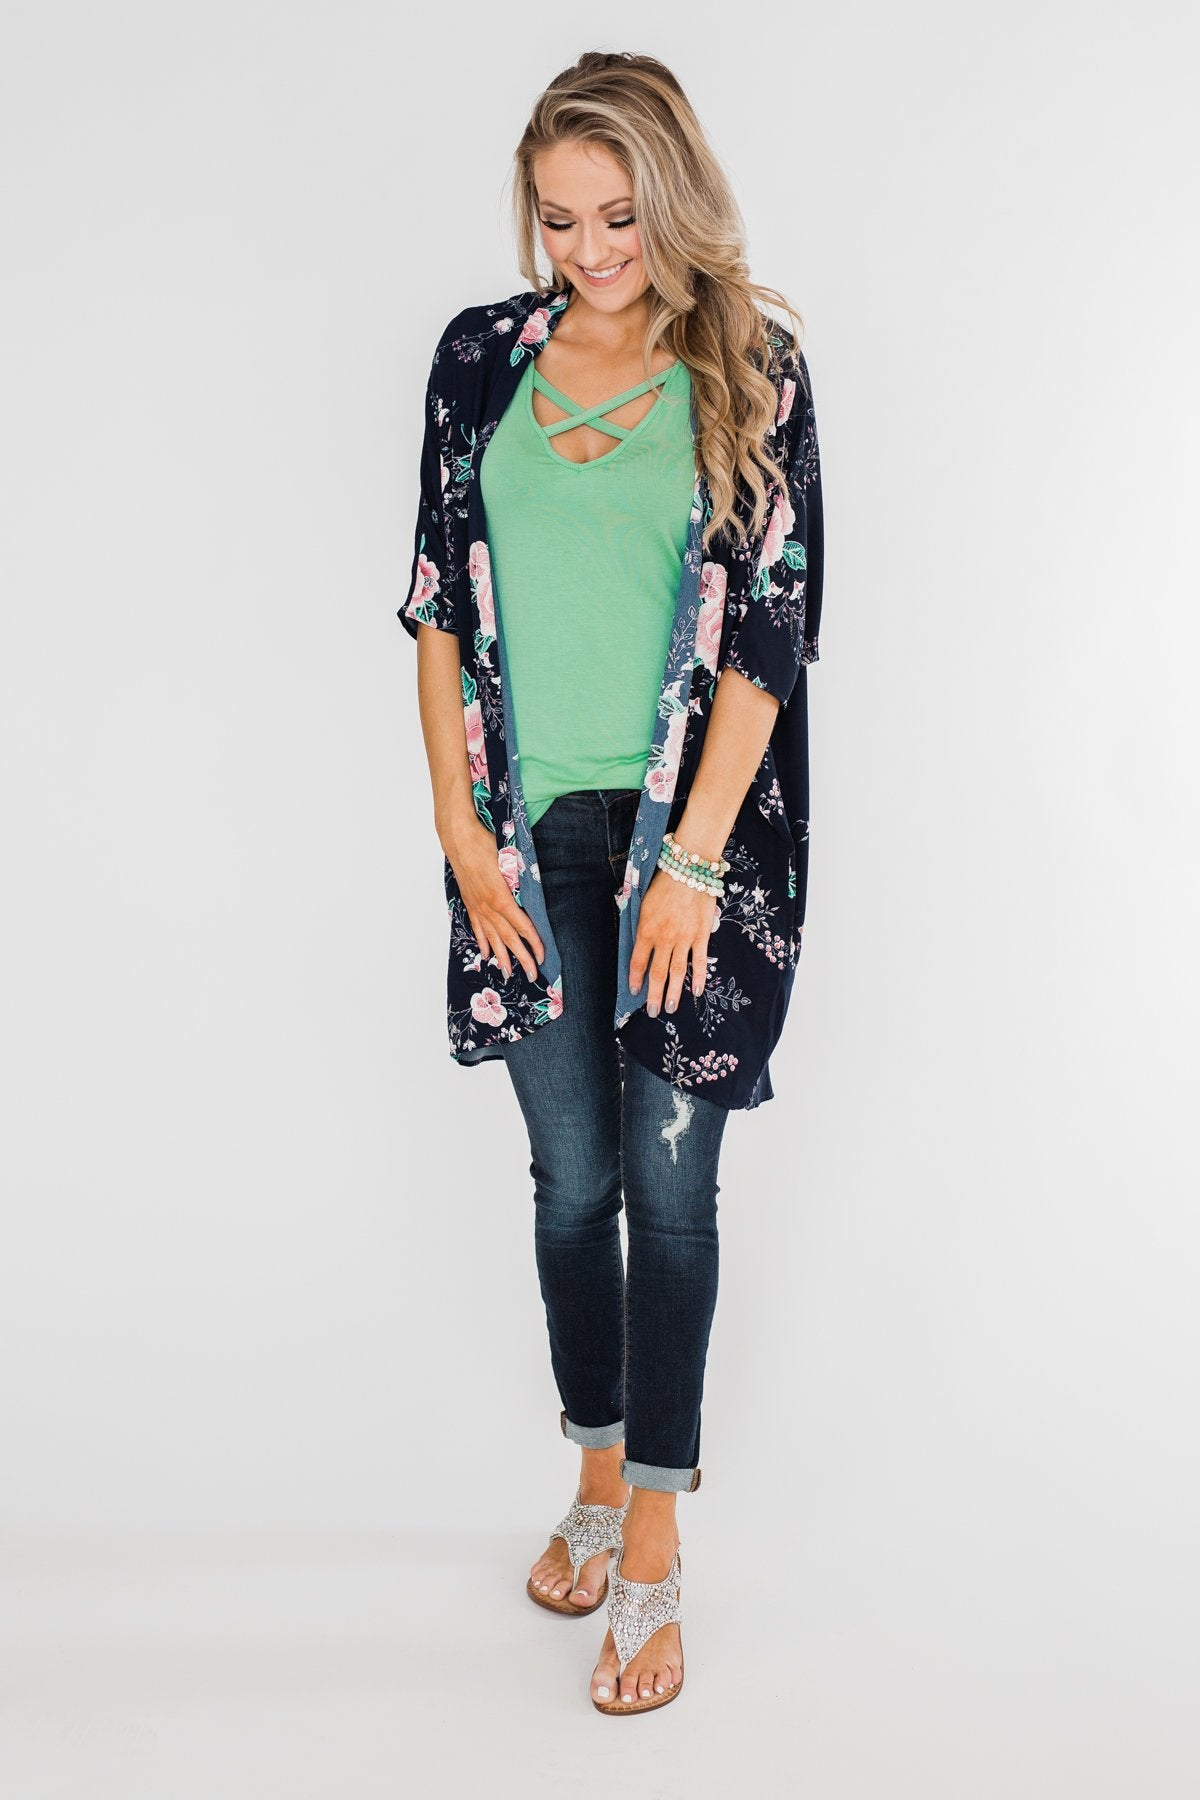 Start With Forever Floral Kimono- Navy